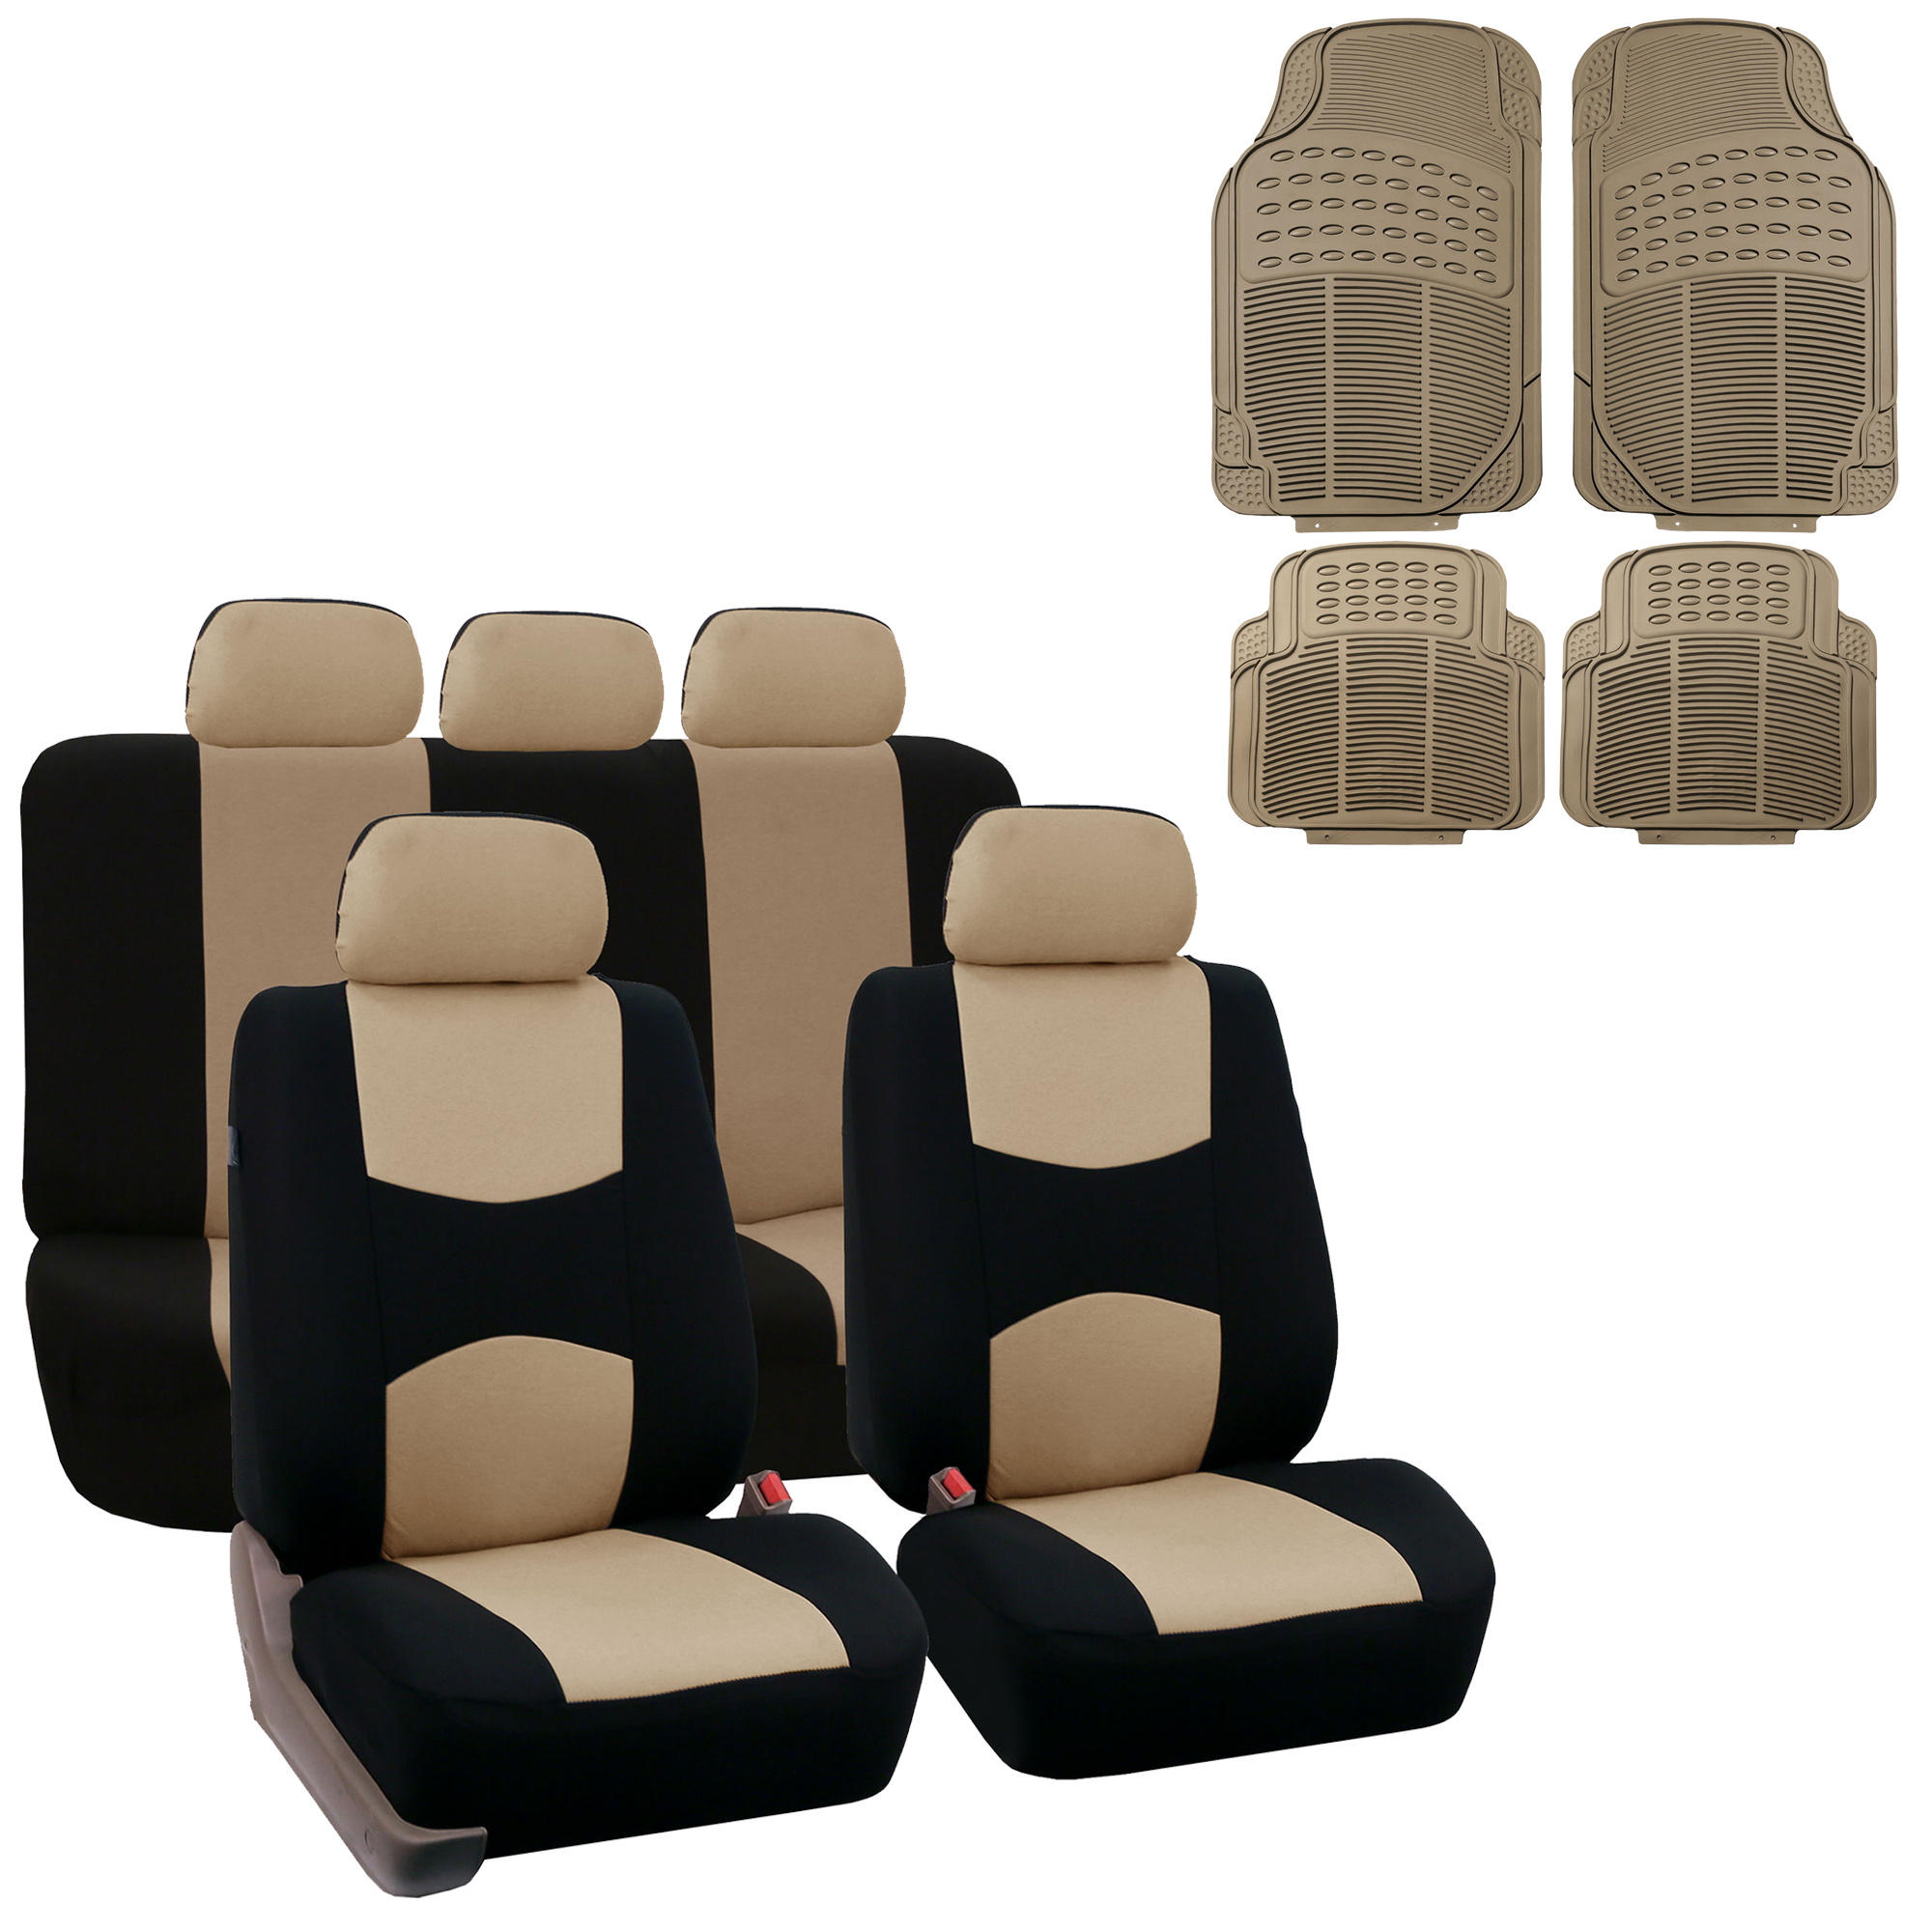 3 Row 8 Seaters SUV Beige Neoprene Seat Cover w// Black All Weather Floor Mats